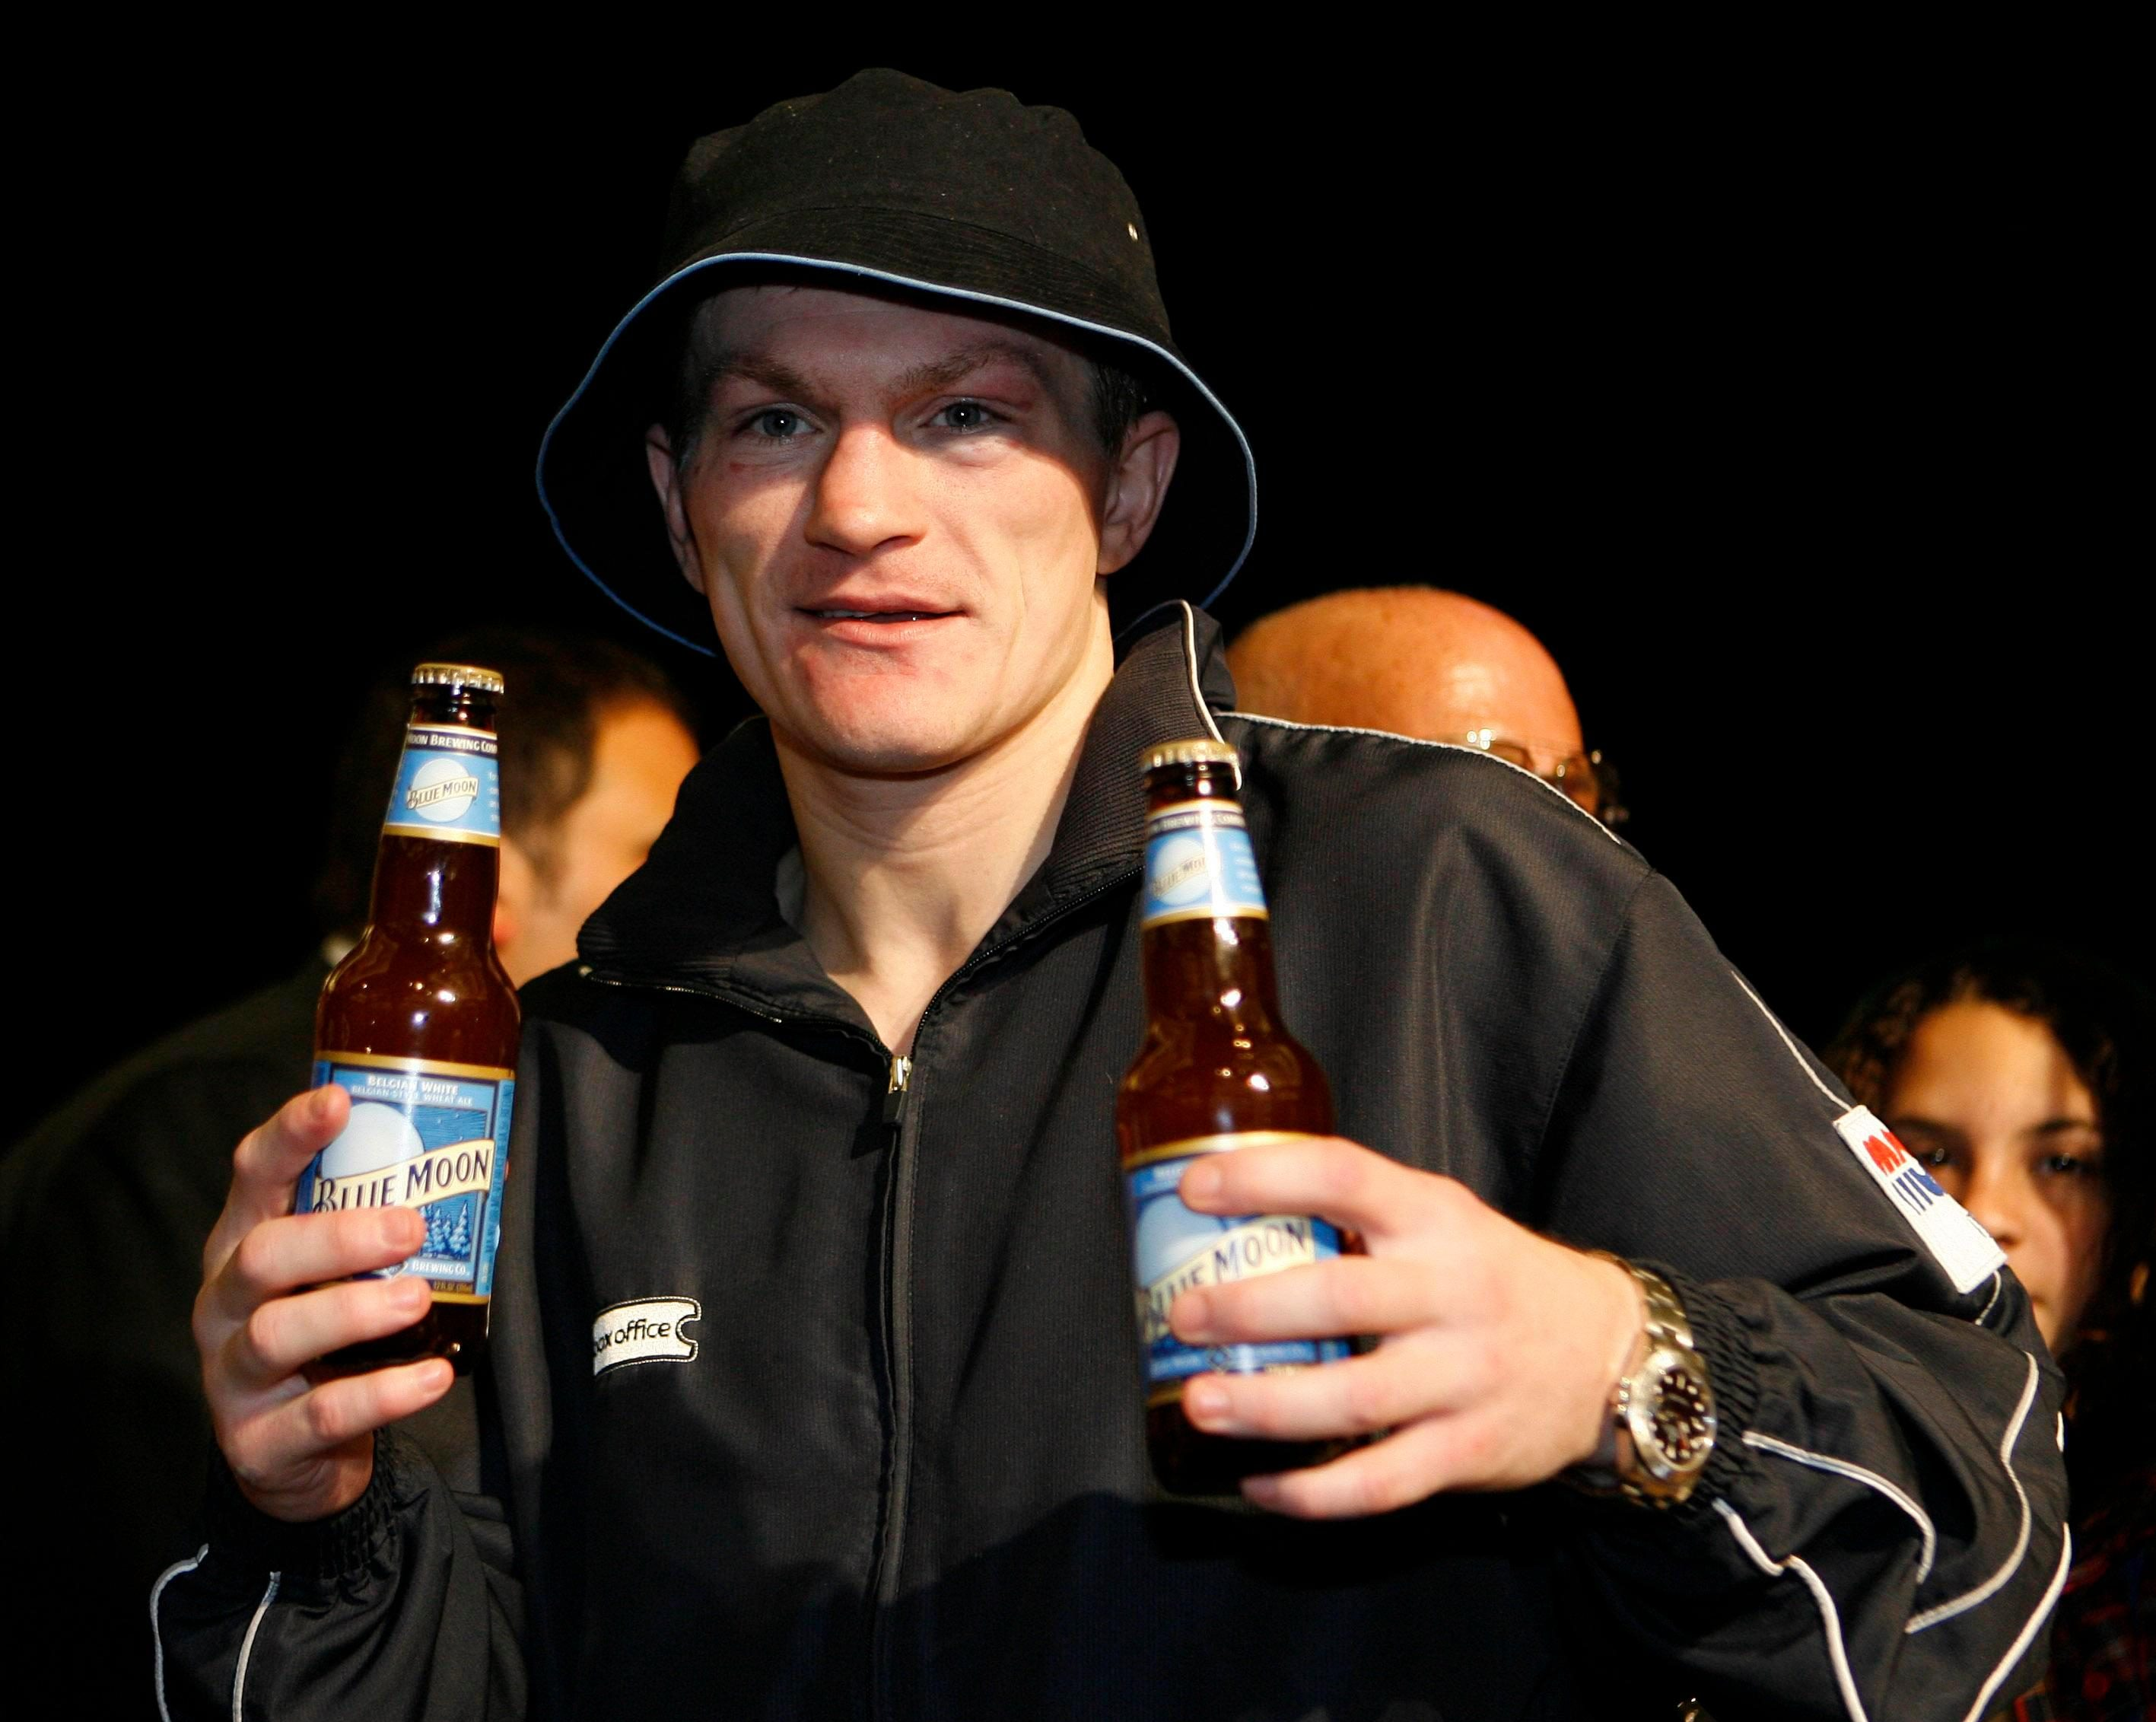 After bottling slashing his wrists, Hatton admits he tried to drink himself to death